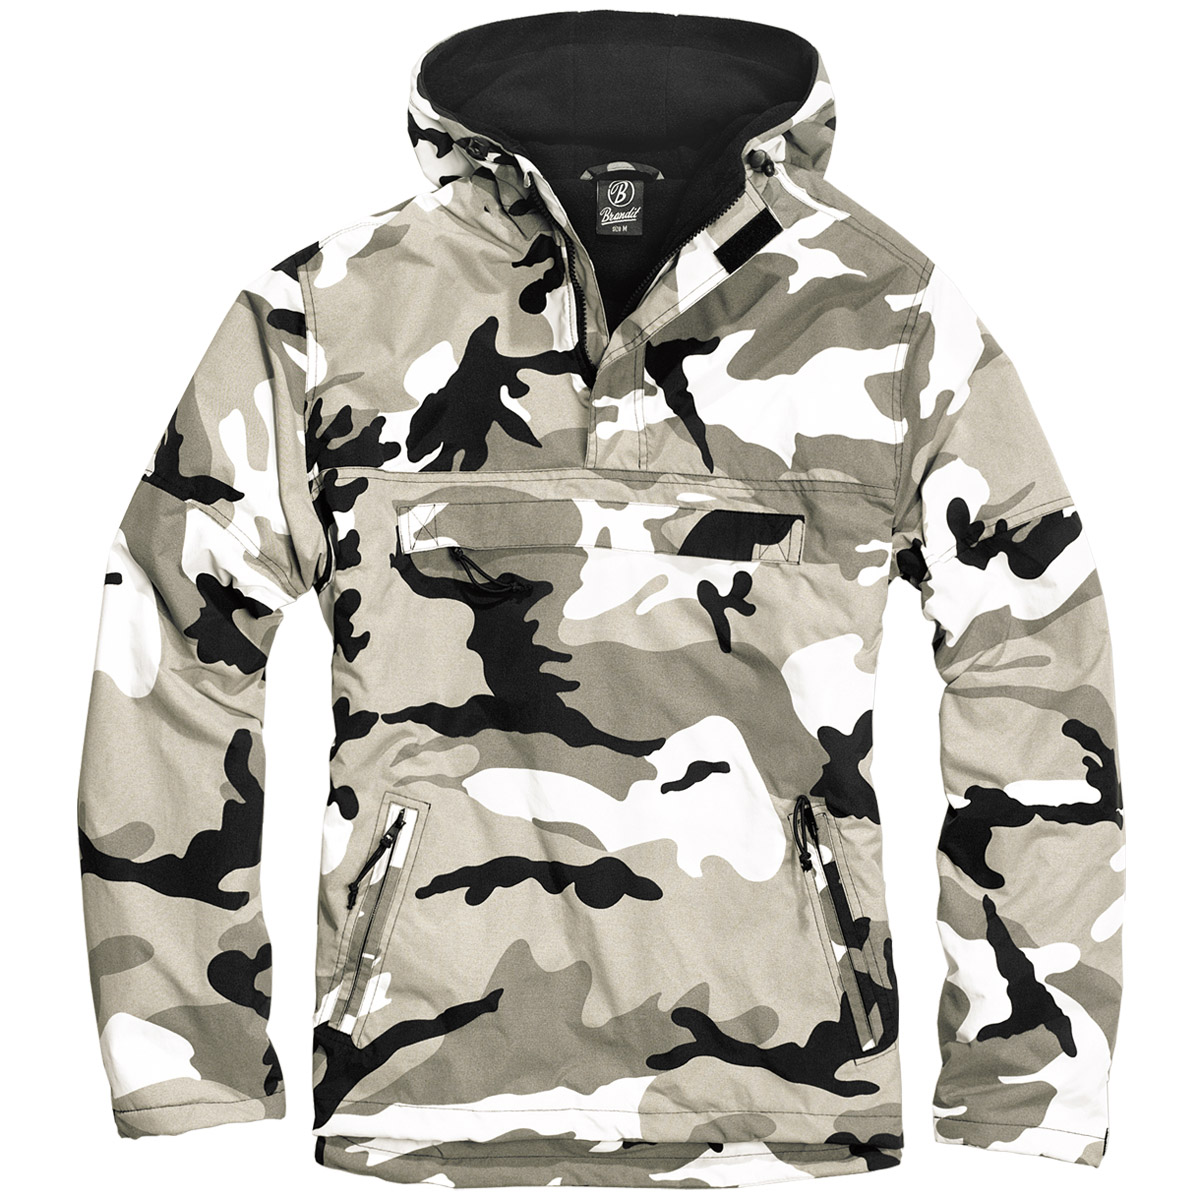 brandit military windbreaker tactical hooded anorak mens jacket urban camouflage ebay. Black Bedroom Furniture Sets. Home Design Ideas